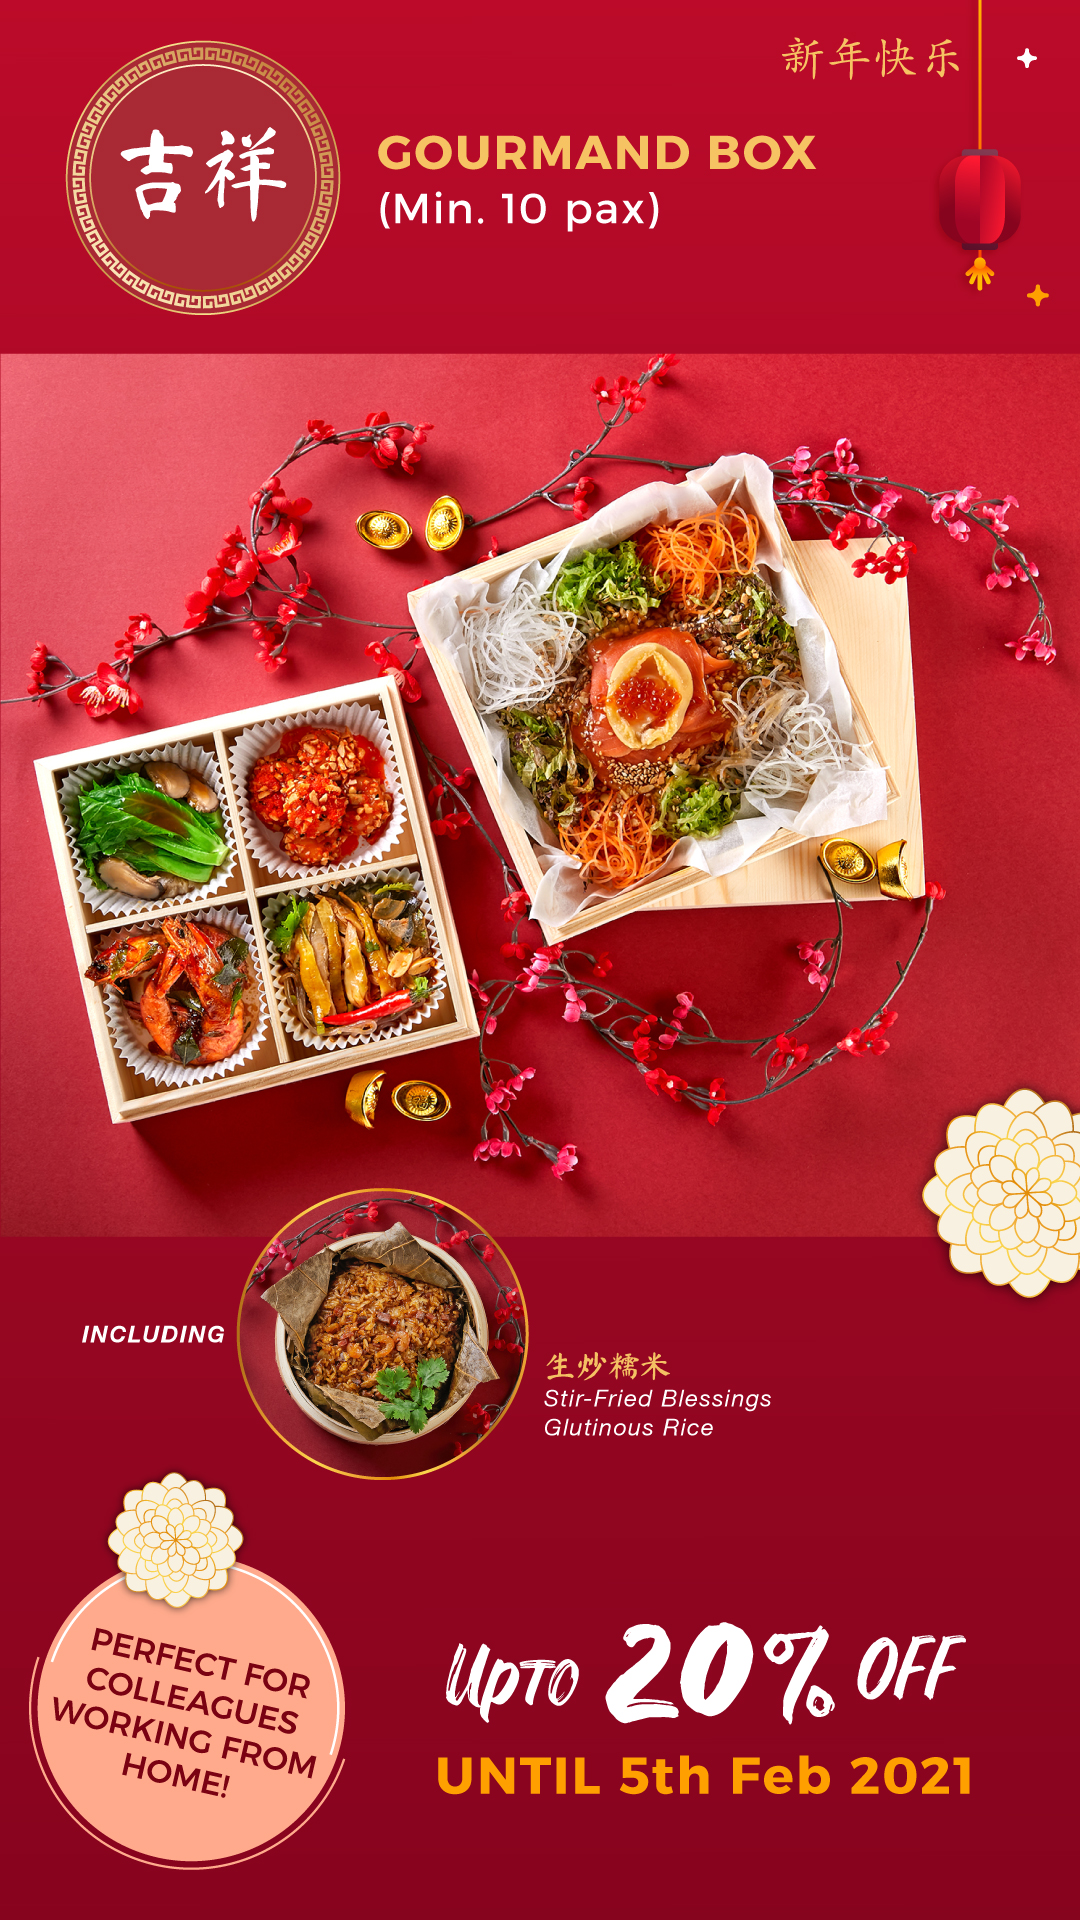 Esseplore's Gourmand box with Stir-Fried Blessings Glutinous Rice for a minimum of 10 pax, perfect for colleagues working from home